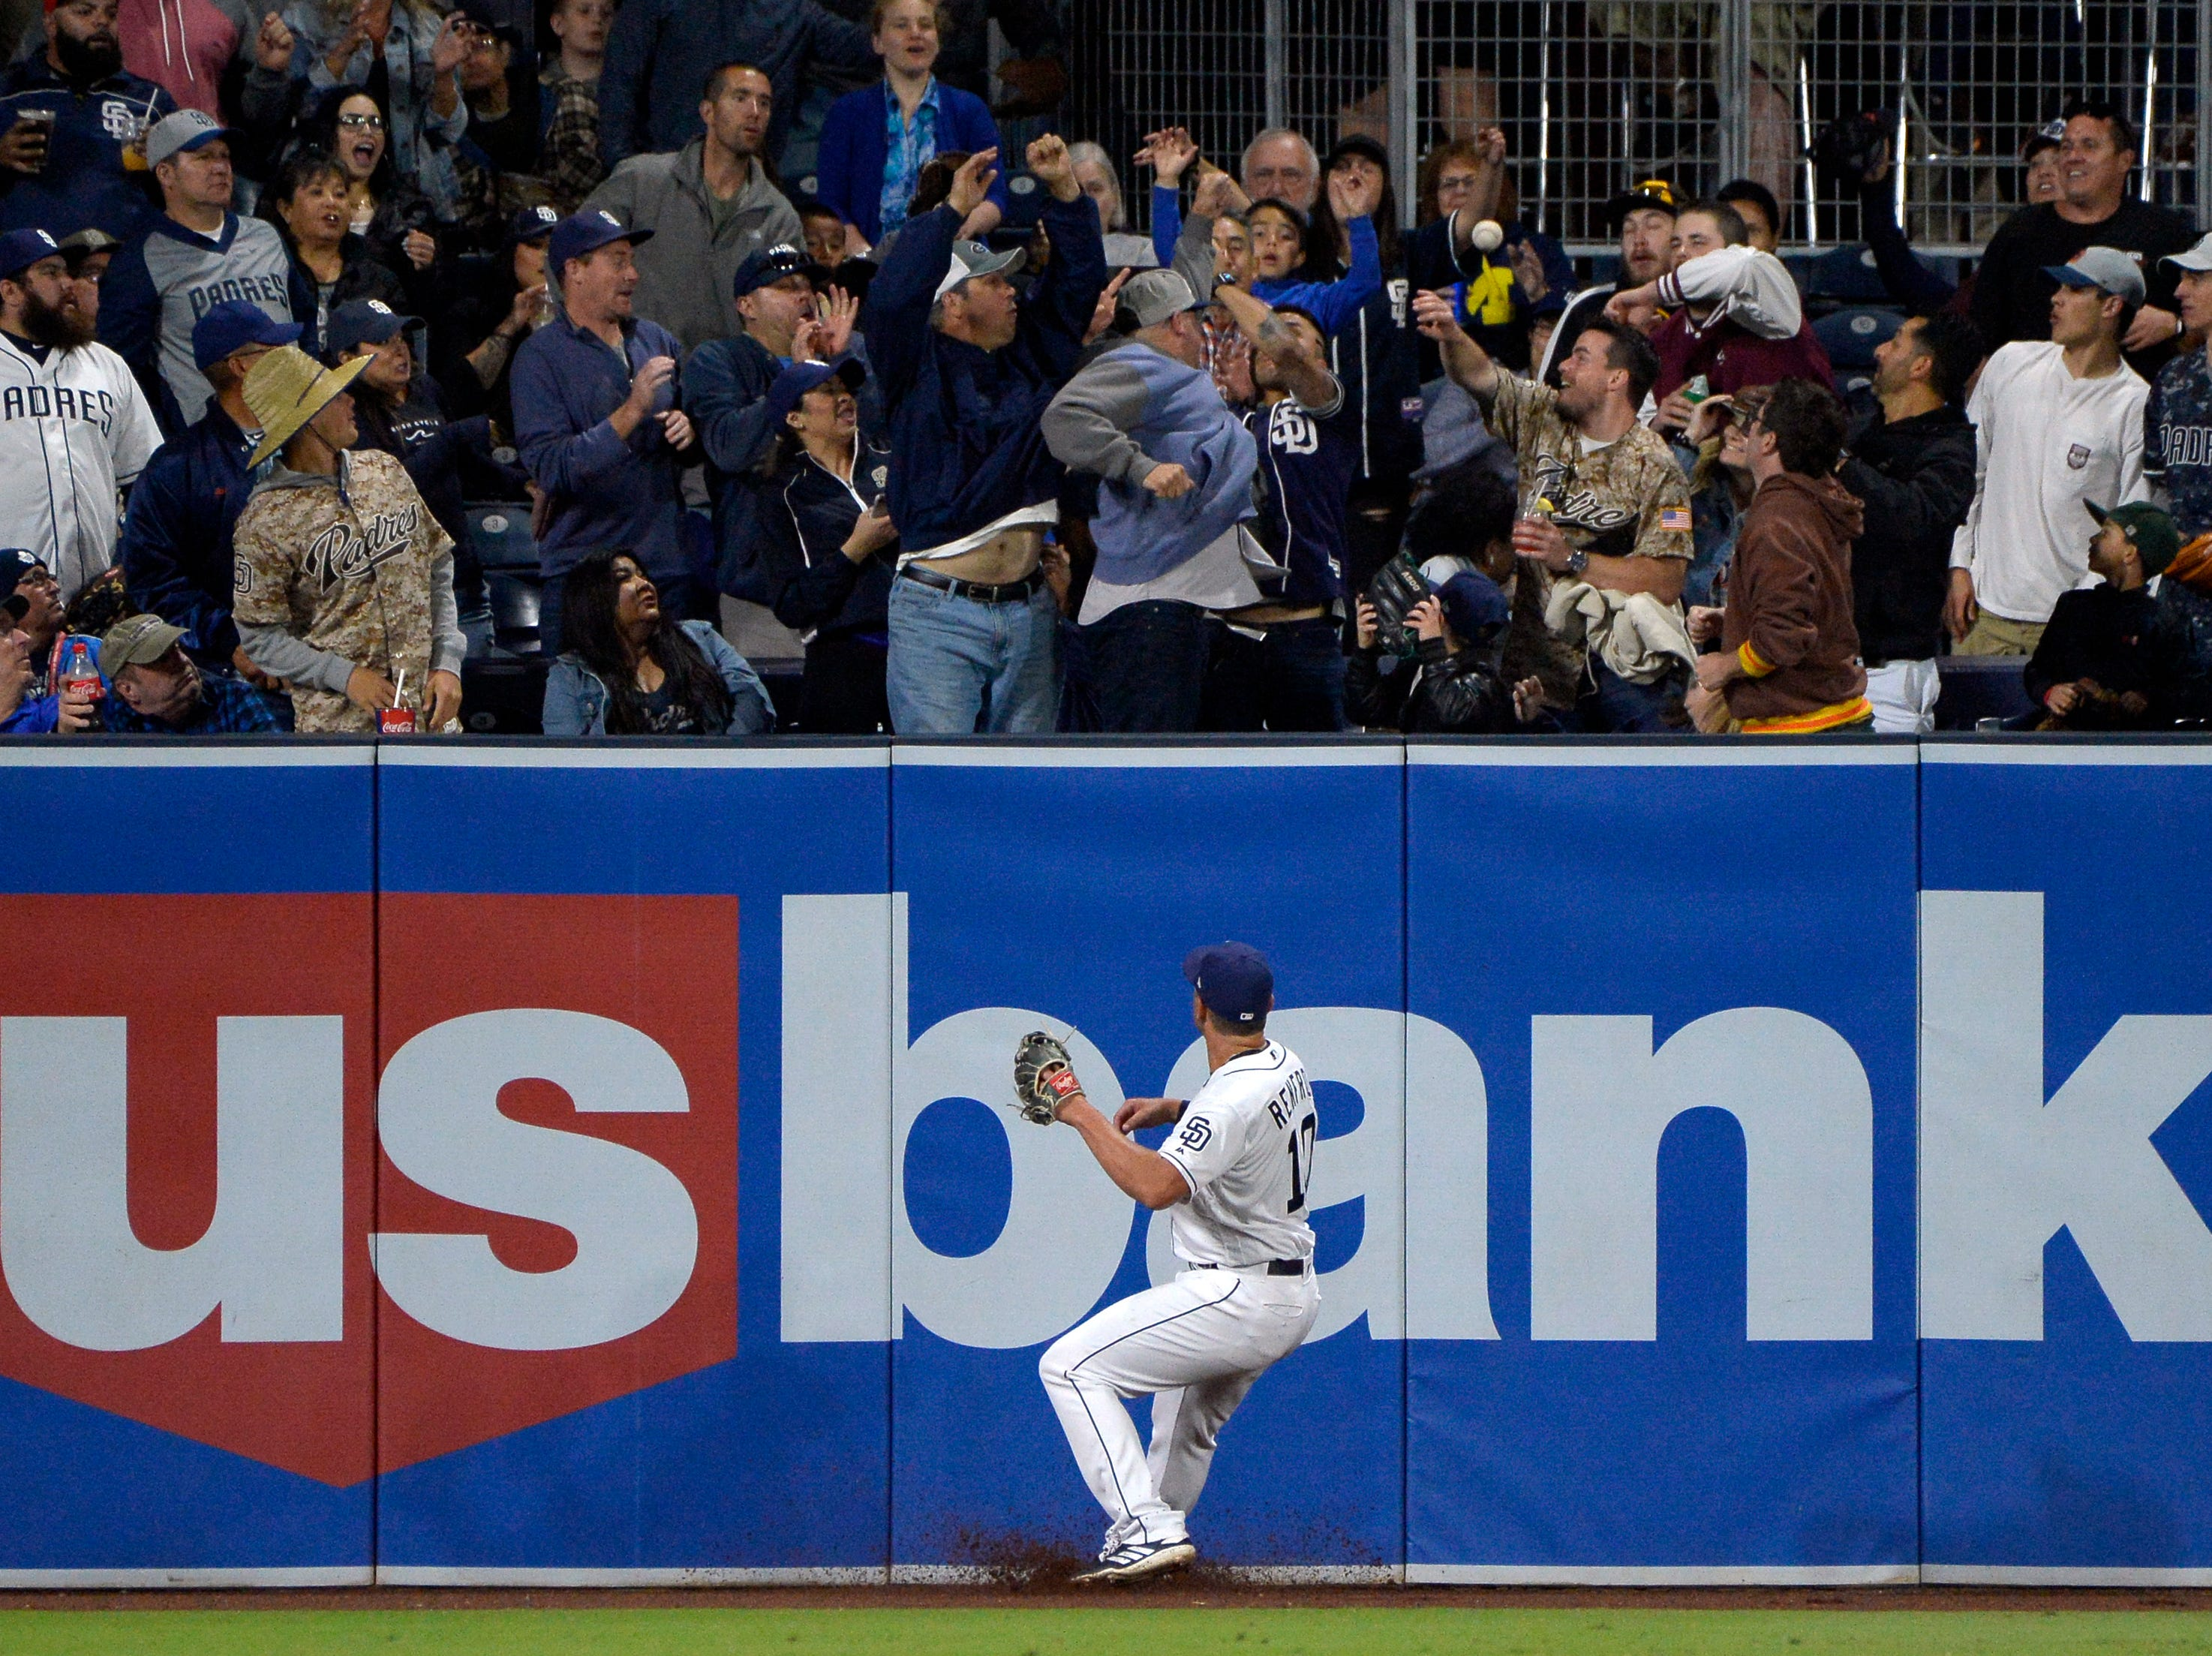 Apr 2, 2019; San Diego, CA, USA; San Diego Padres left fielder Hunter Renfroe (10) watches as fans attempt to catch a solo home run by Arizona Diamondbacks center fielder Ketel Marte (not pictured) during the fourth inning at Petco Park. Mandatory Credit: Jake Roth-USA TODAY Sports